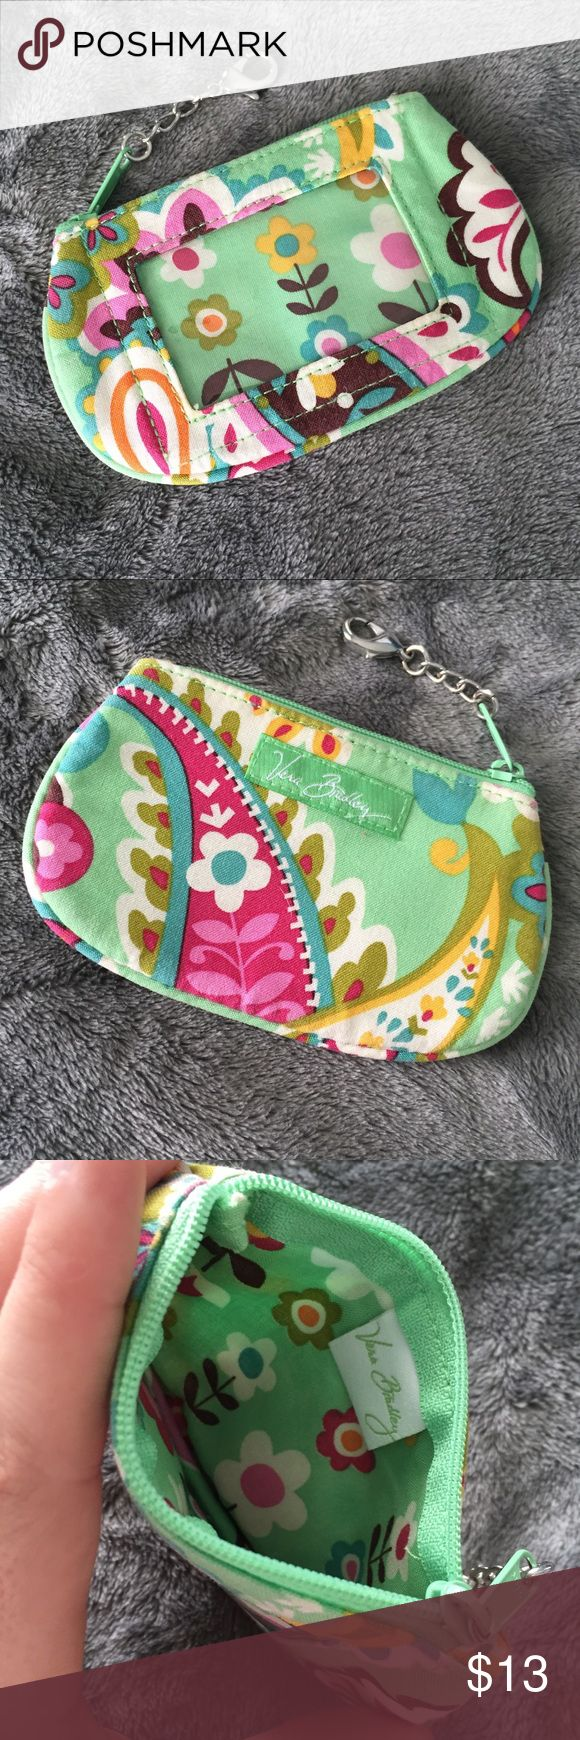 """Vera Bradley """"Tutti Frutti"""" Zip ID Wallet Cute and small zip ID wallet with clear window. Clasps onto a keys or anything for convenience. In great condition! PRICE FIRM. Vera Bradley Bags Wallets"""